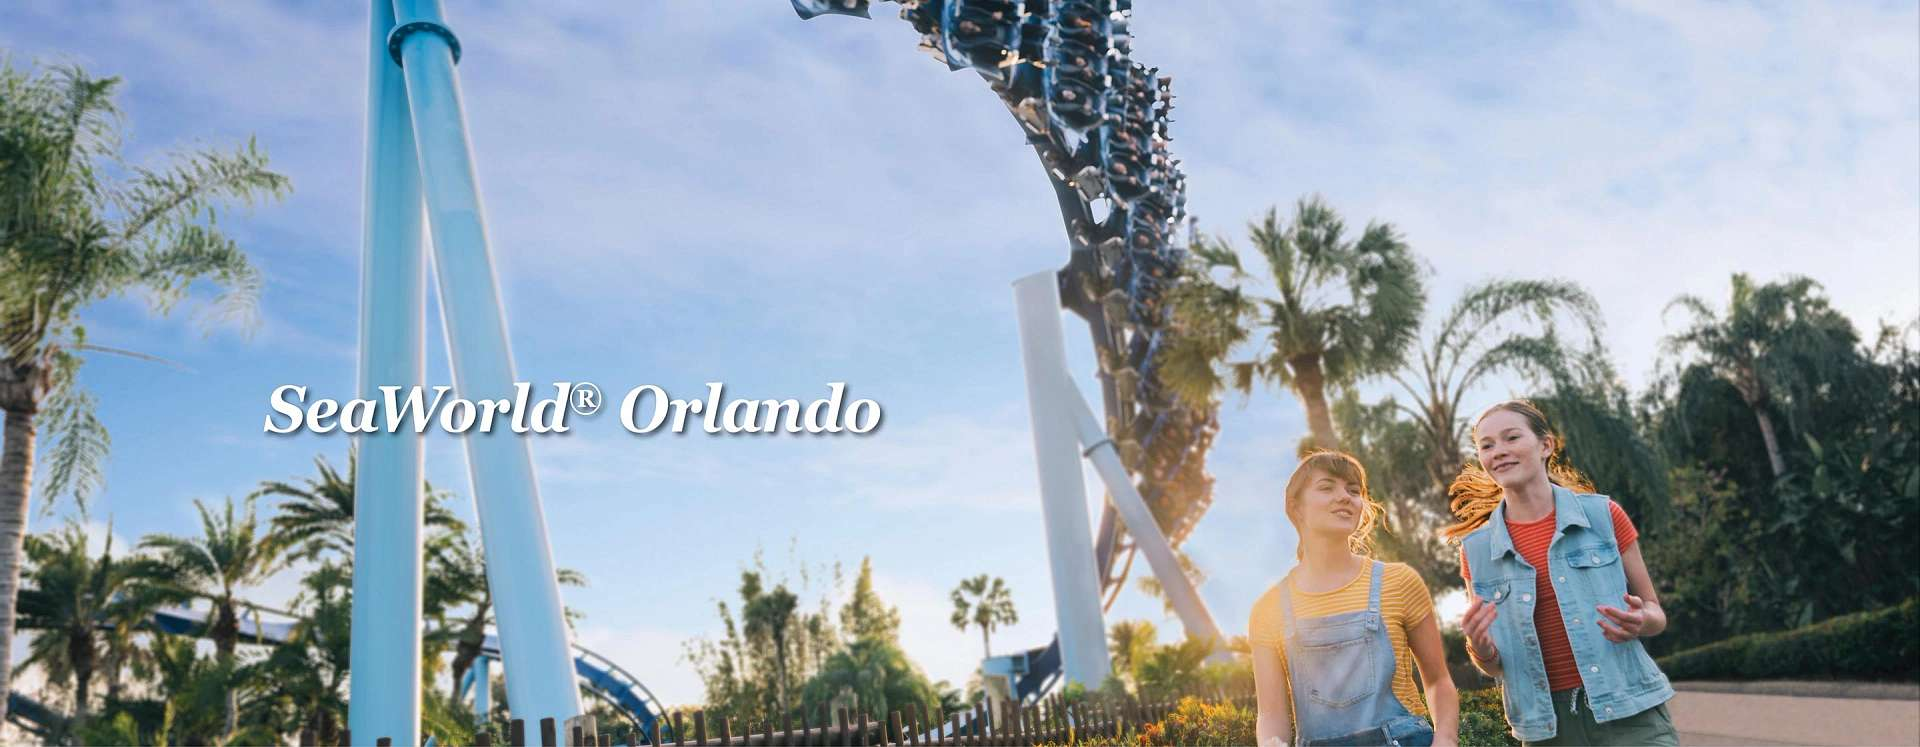 Two teenage girls walking together in SeaWorld Orlando while the Manta rollercoaster zooms by